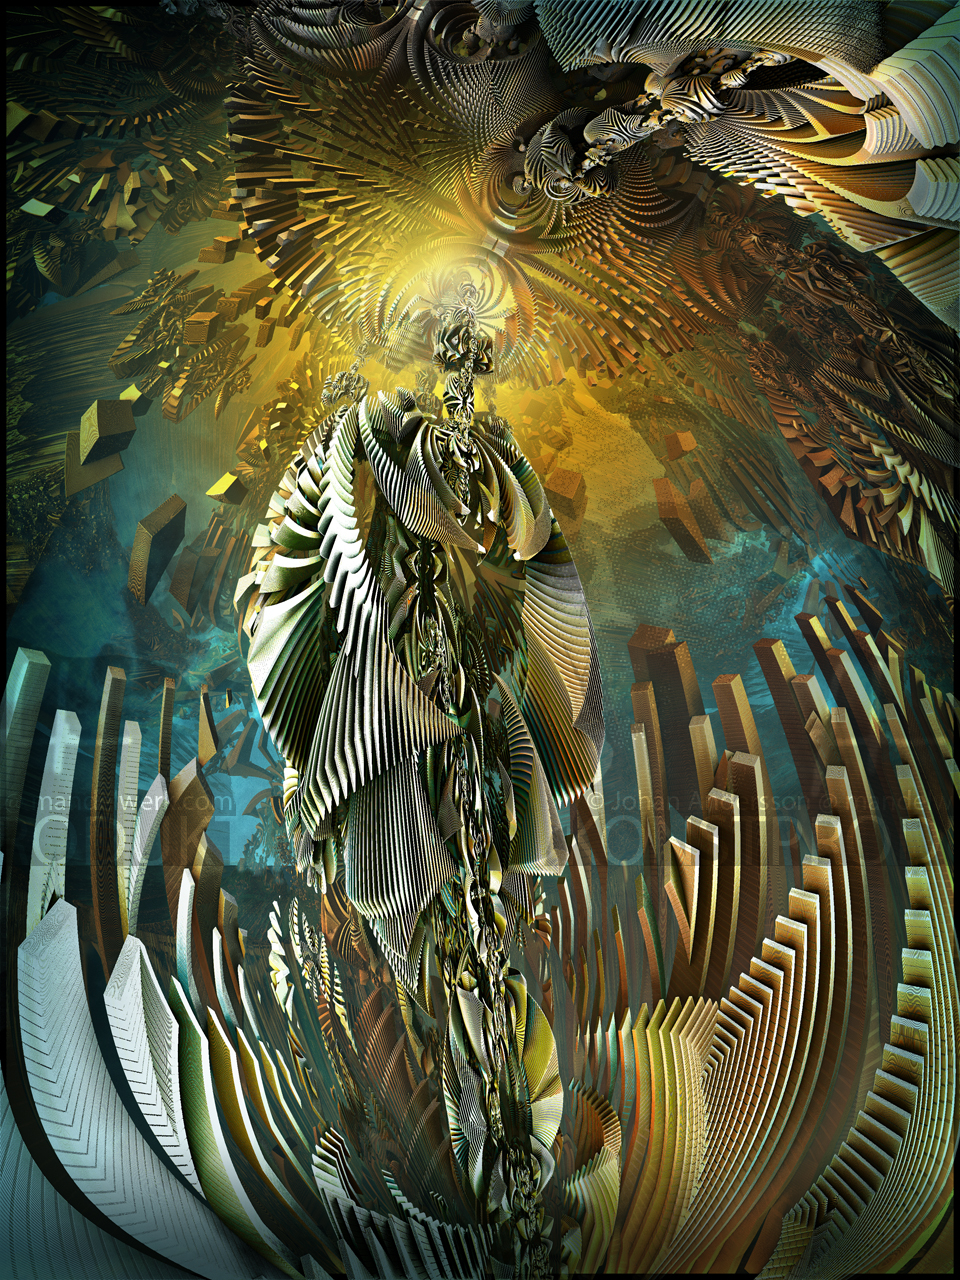 Resurrection of the Madonna of the Nuclear Bomb by MANDELWERK